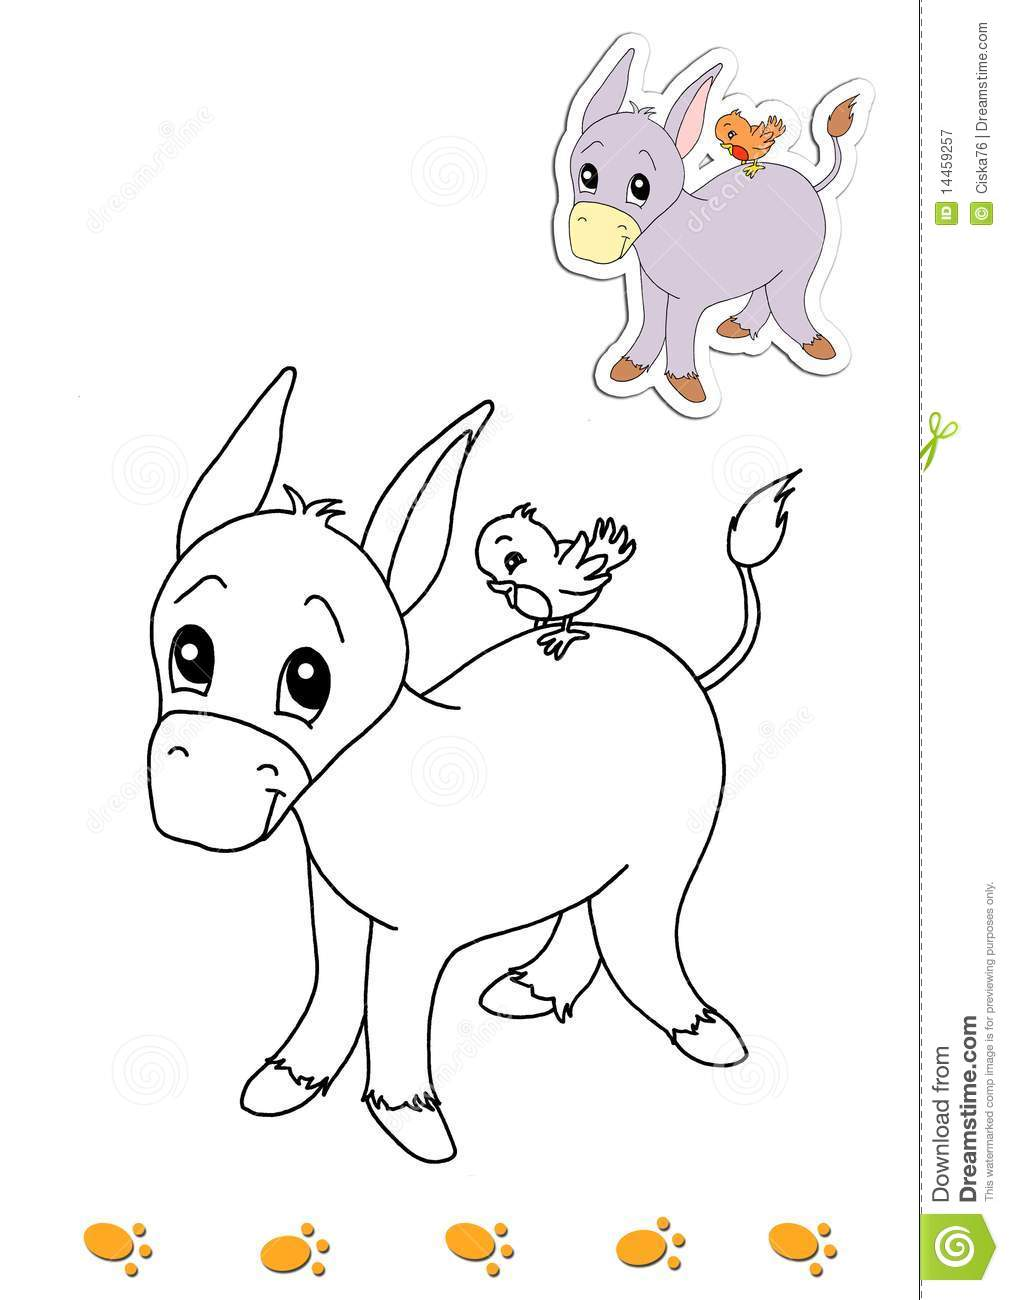 Coloring book of animals 18 - donkey